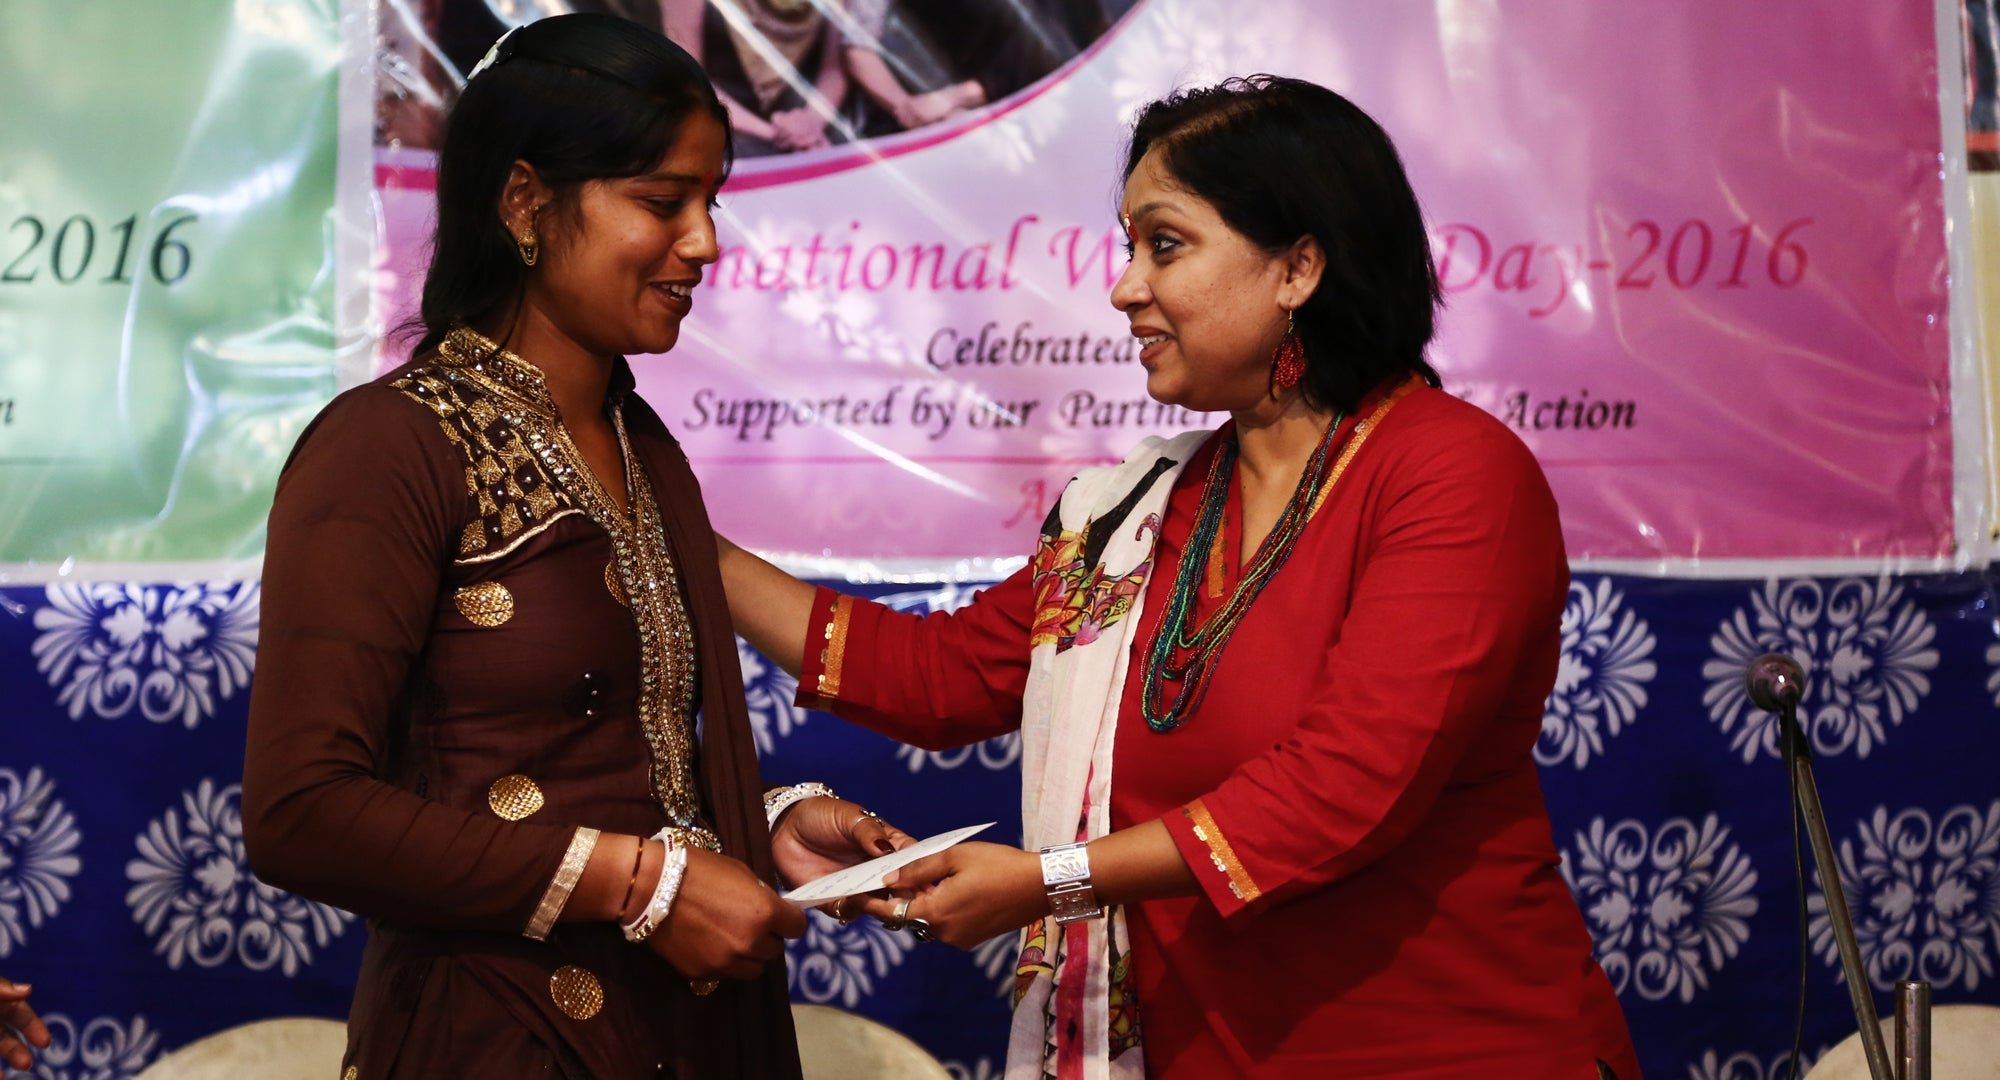 Maqsuda accepting International Women's Day award